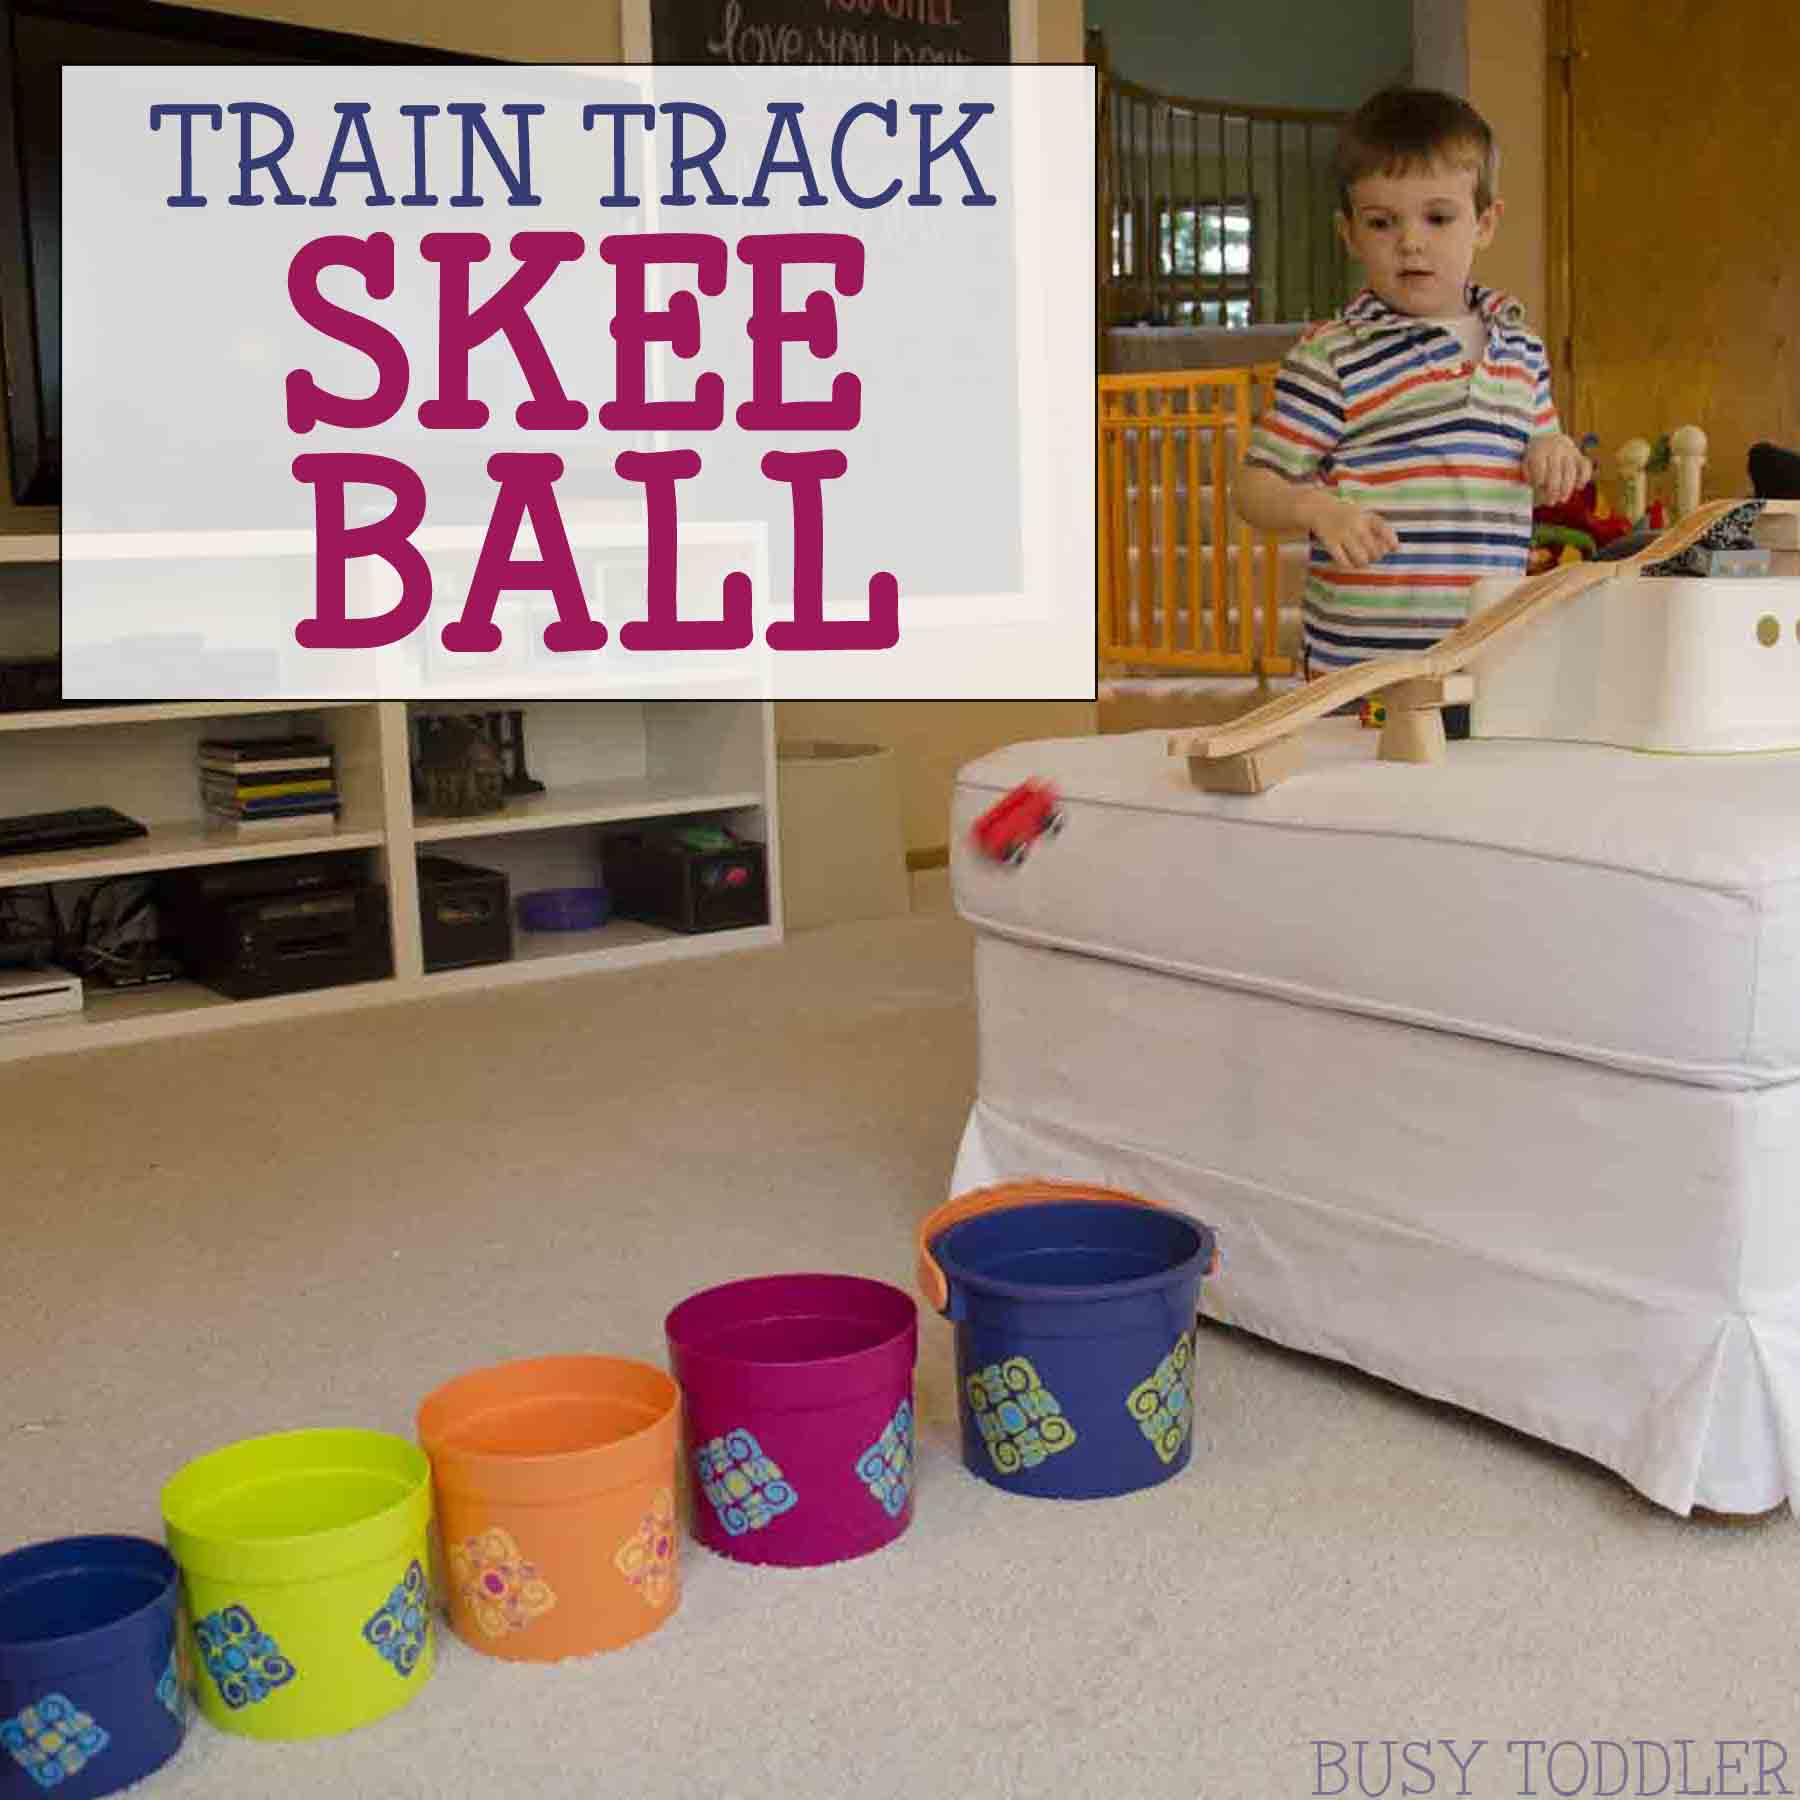 TRAIN TRACK SKEE BALL: We loved the book Old Tracks, New Tricks and it inspired this wooden train tracks activity. Making a fun indoor activity that toddlers and preschoolers will love. This STEM activity was so much fun!